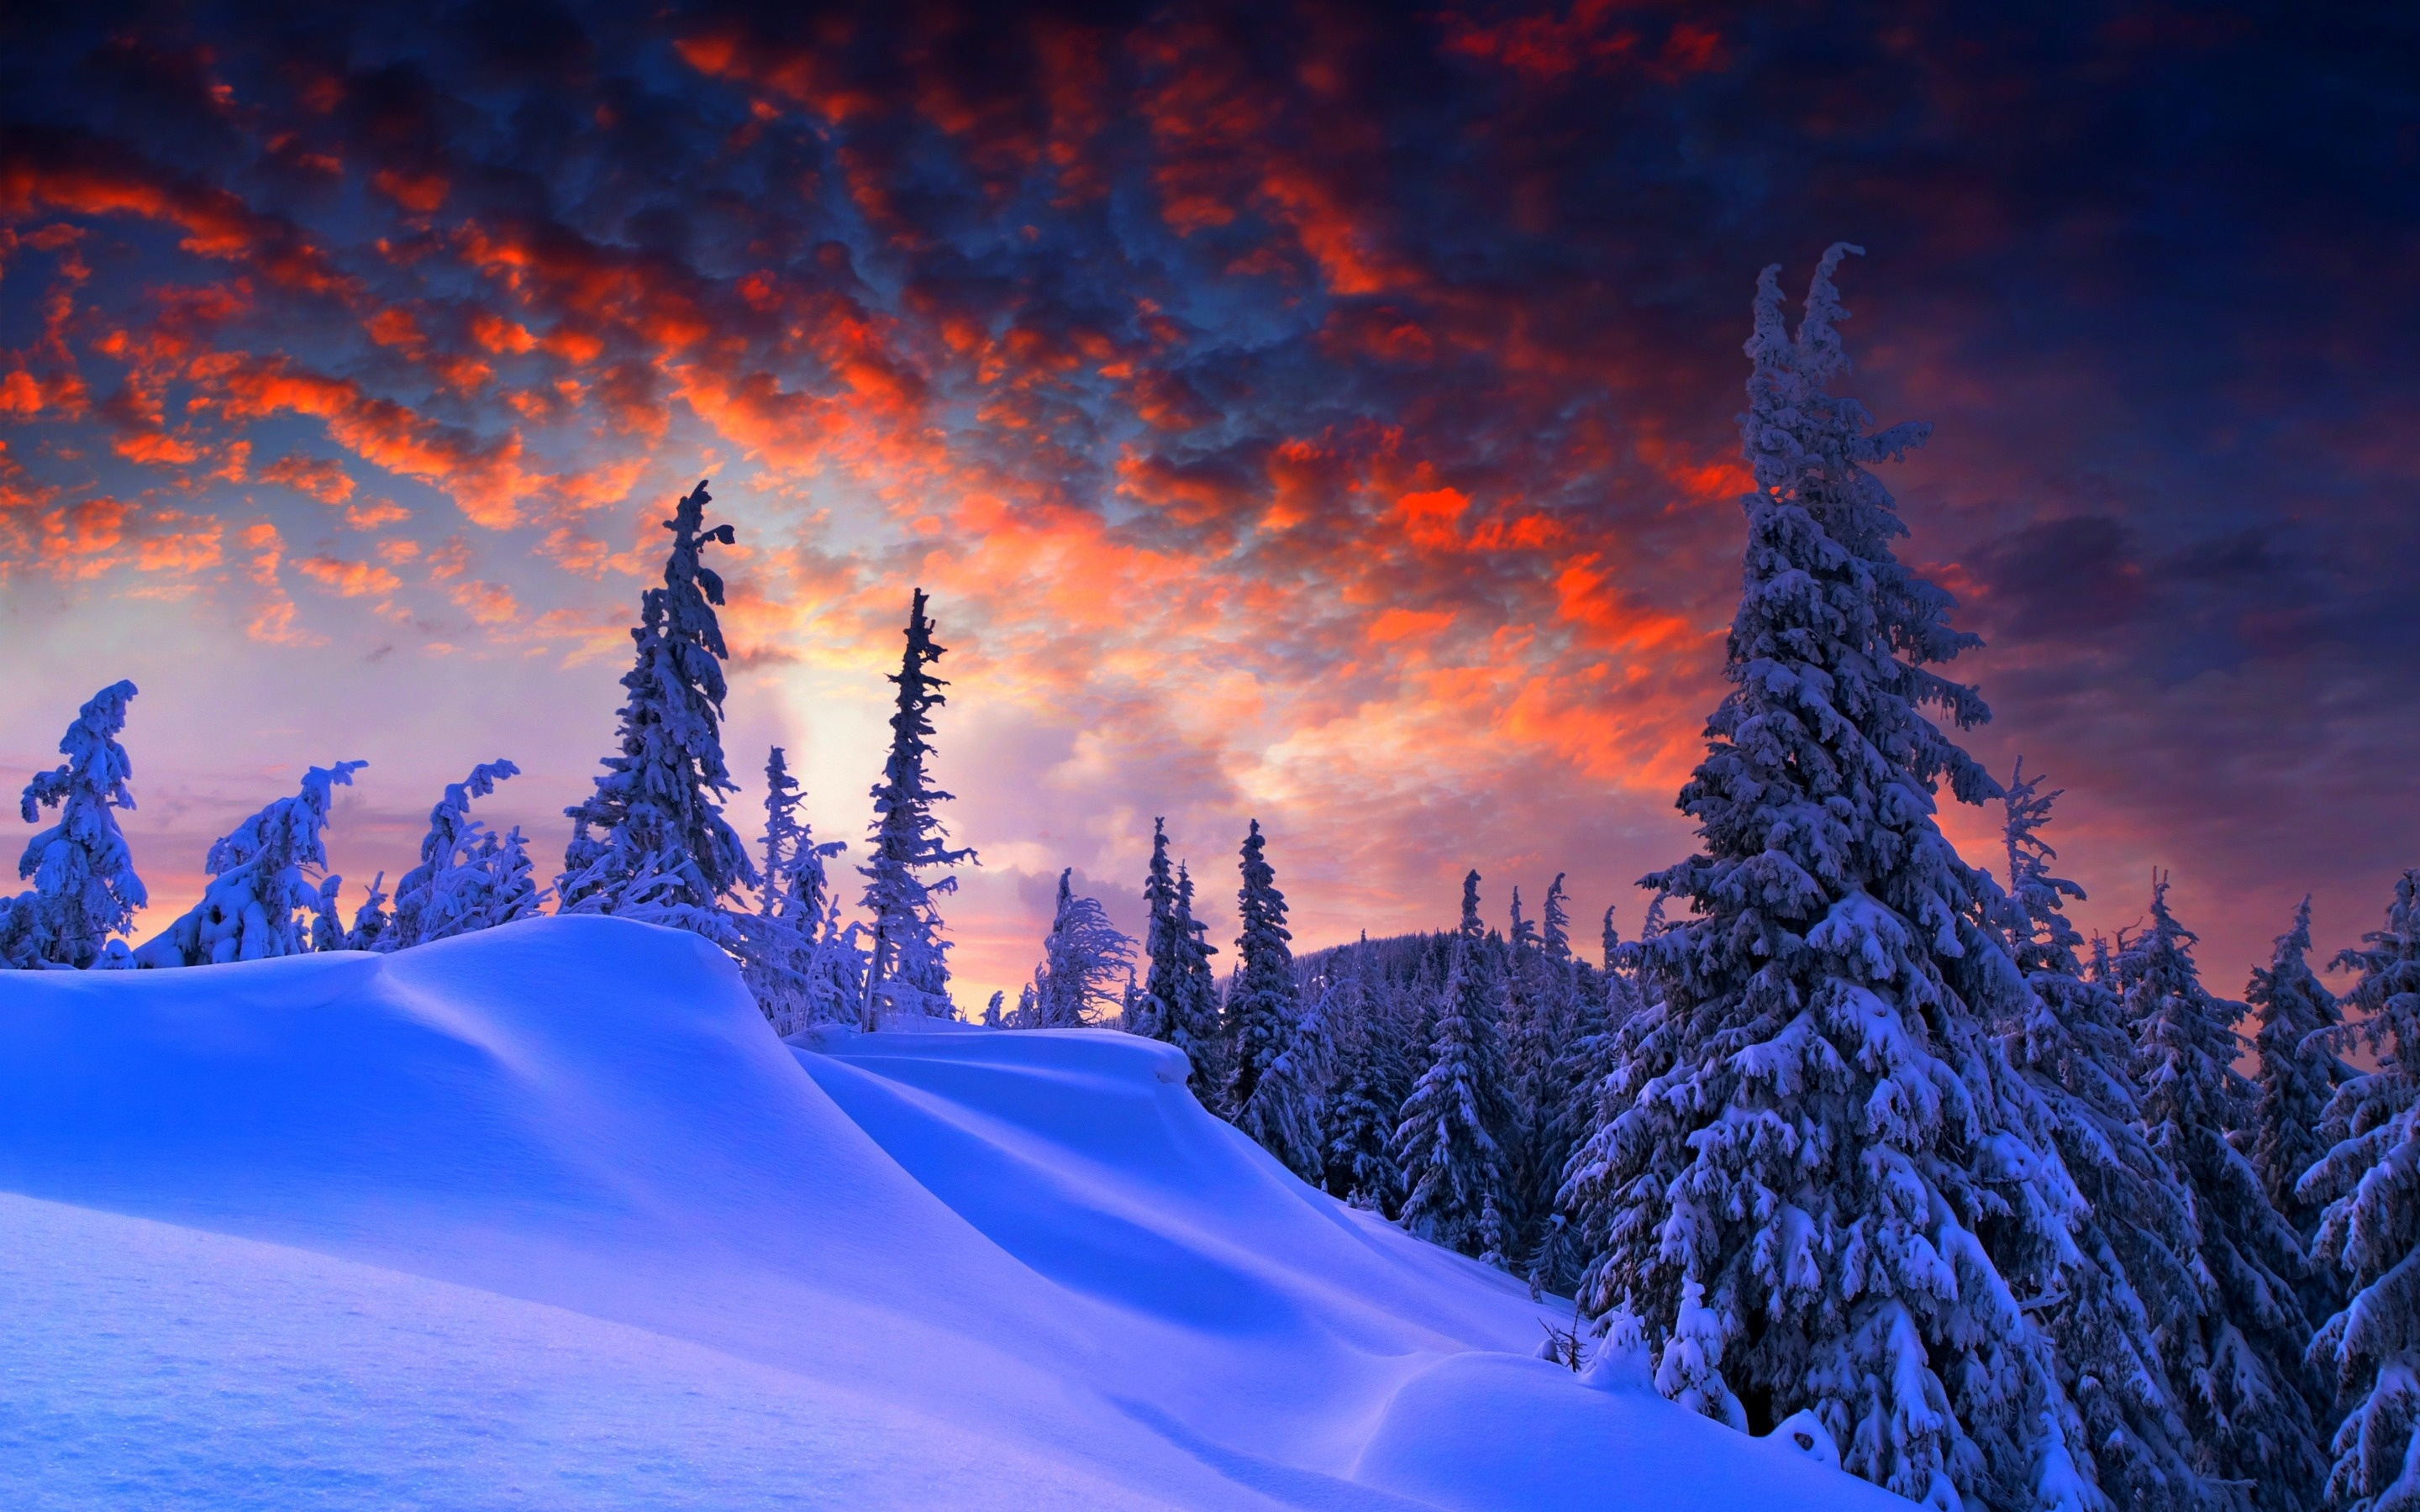 winter mountain sunset sky wallpapers - 2880x1800 - 1332980